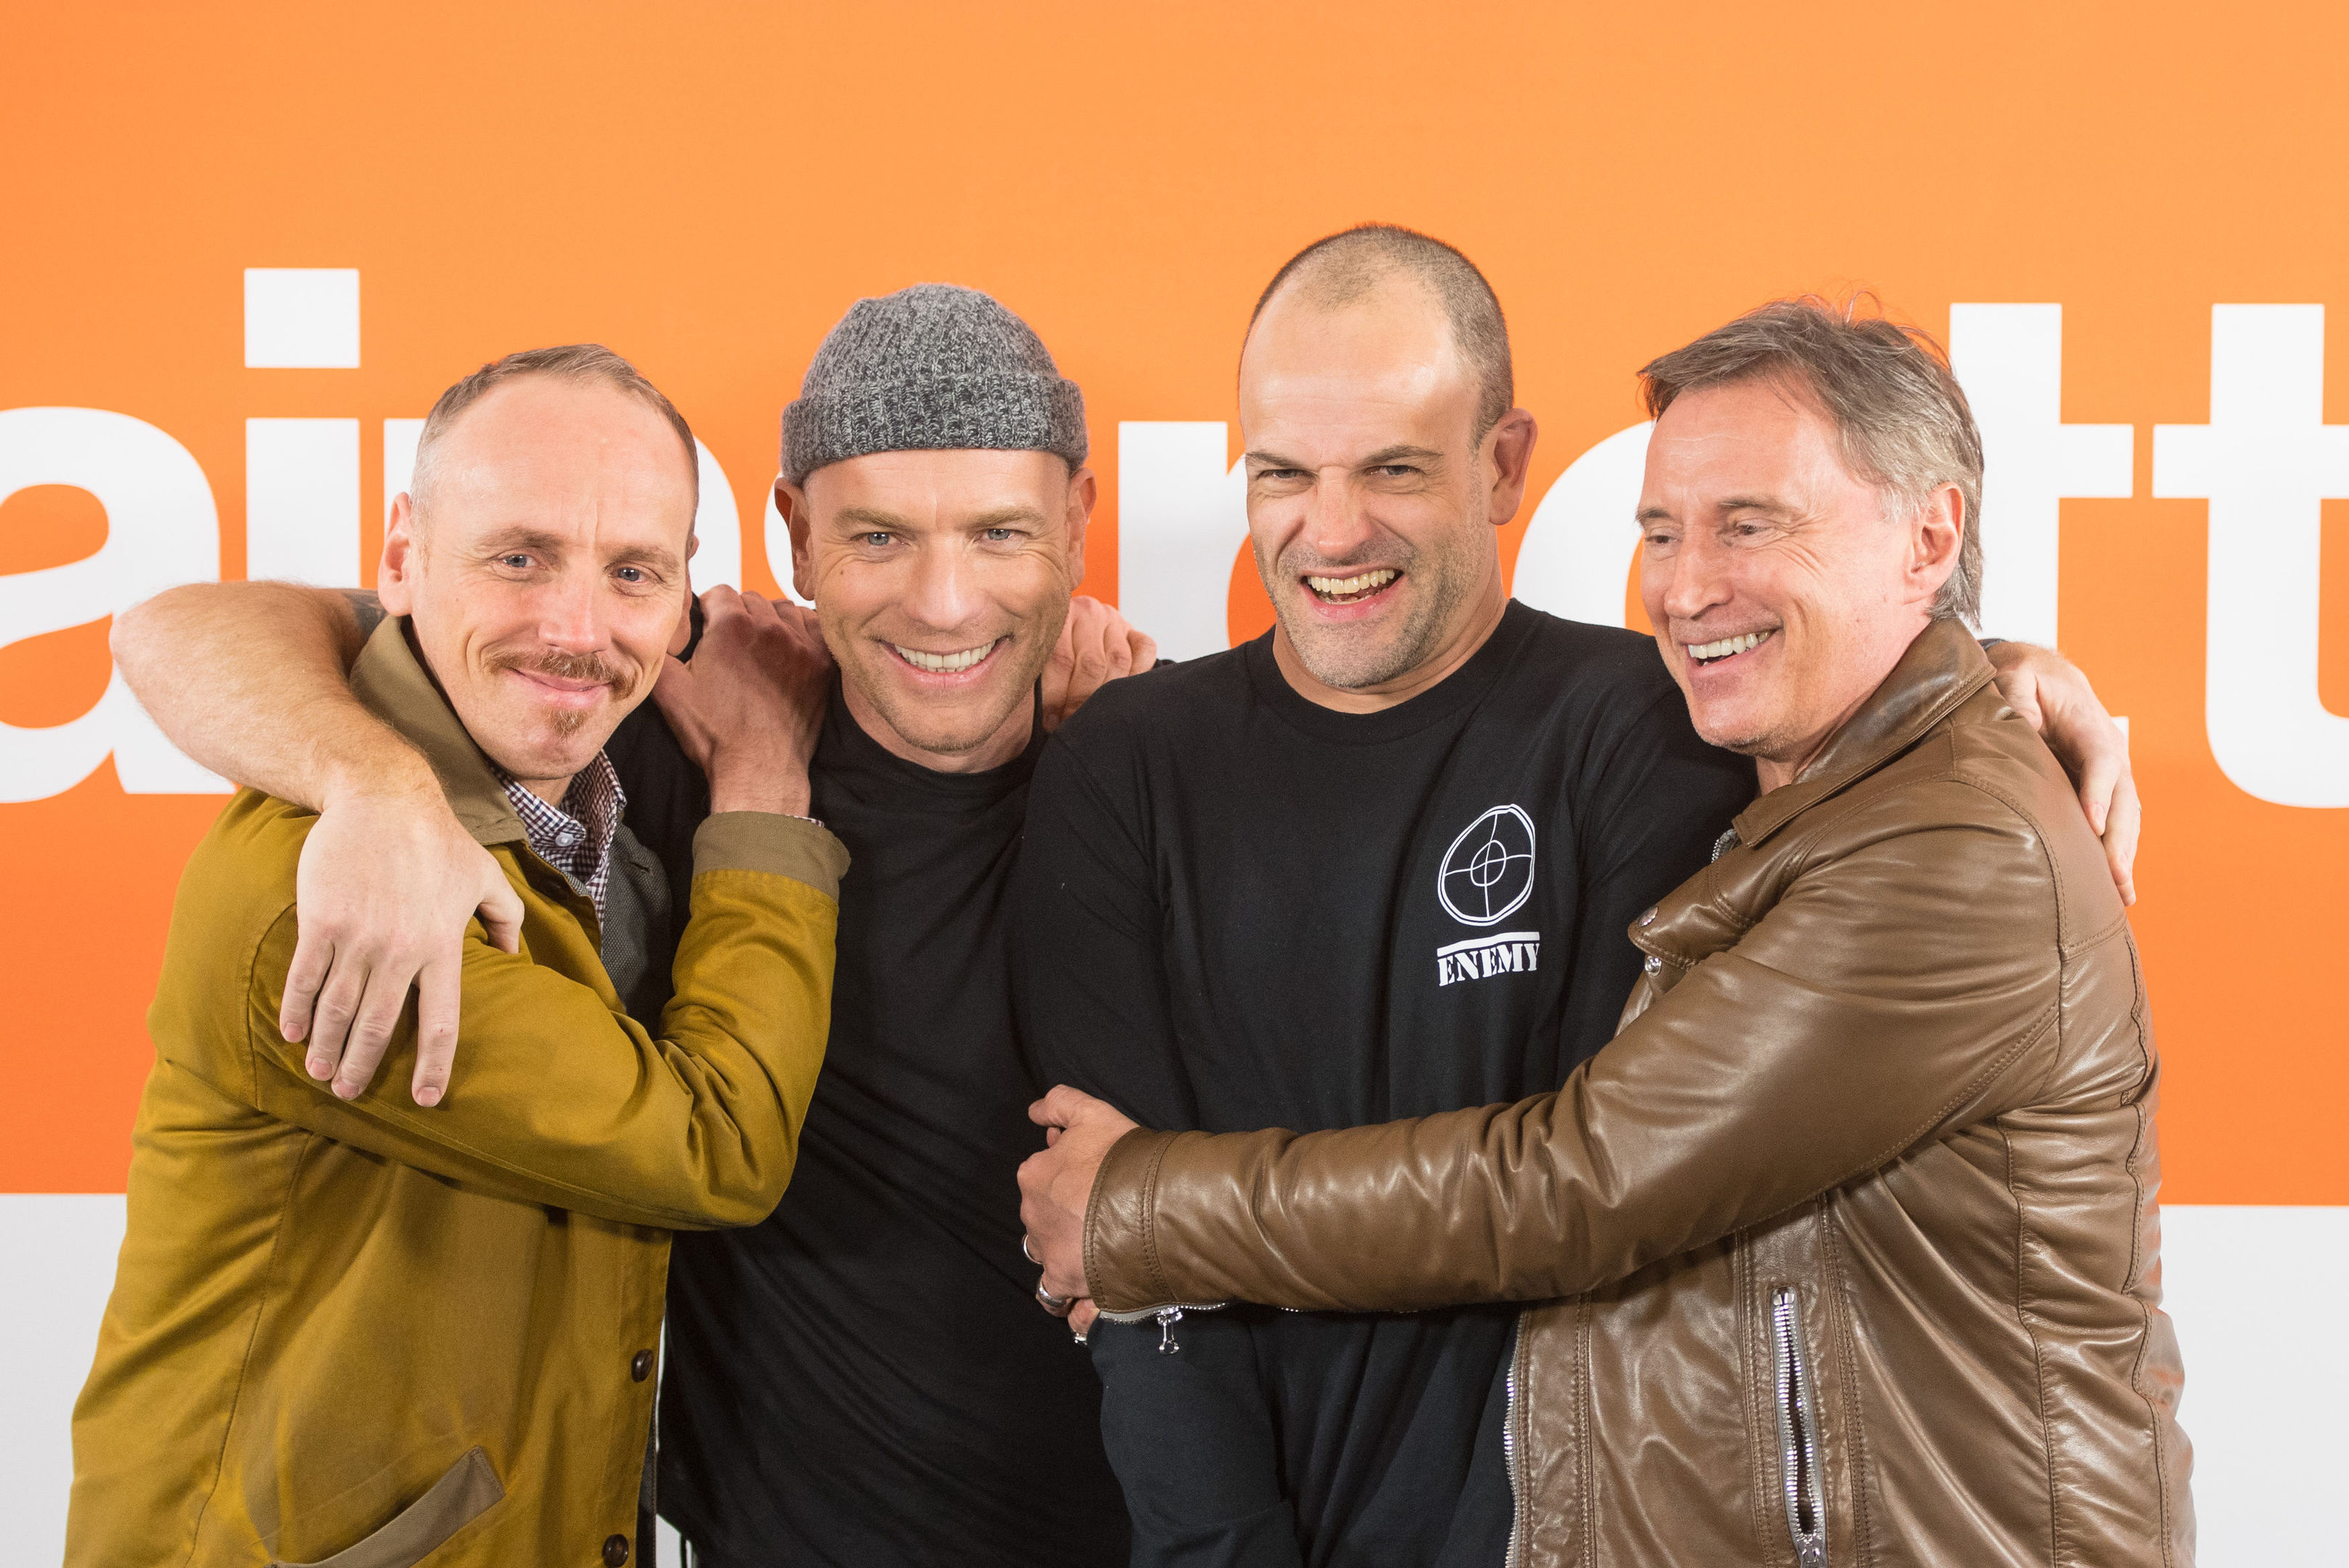 (Left to right) cast members Ewen Bremner, Ewan McGregor, Jonny Lee Miller and Robert Carlyle during a photo call for the cast of T2 Trainspotting (Dominic Lipinski/PA Wire)